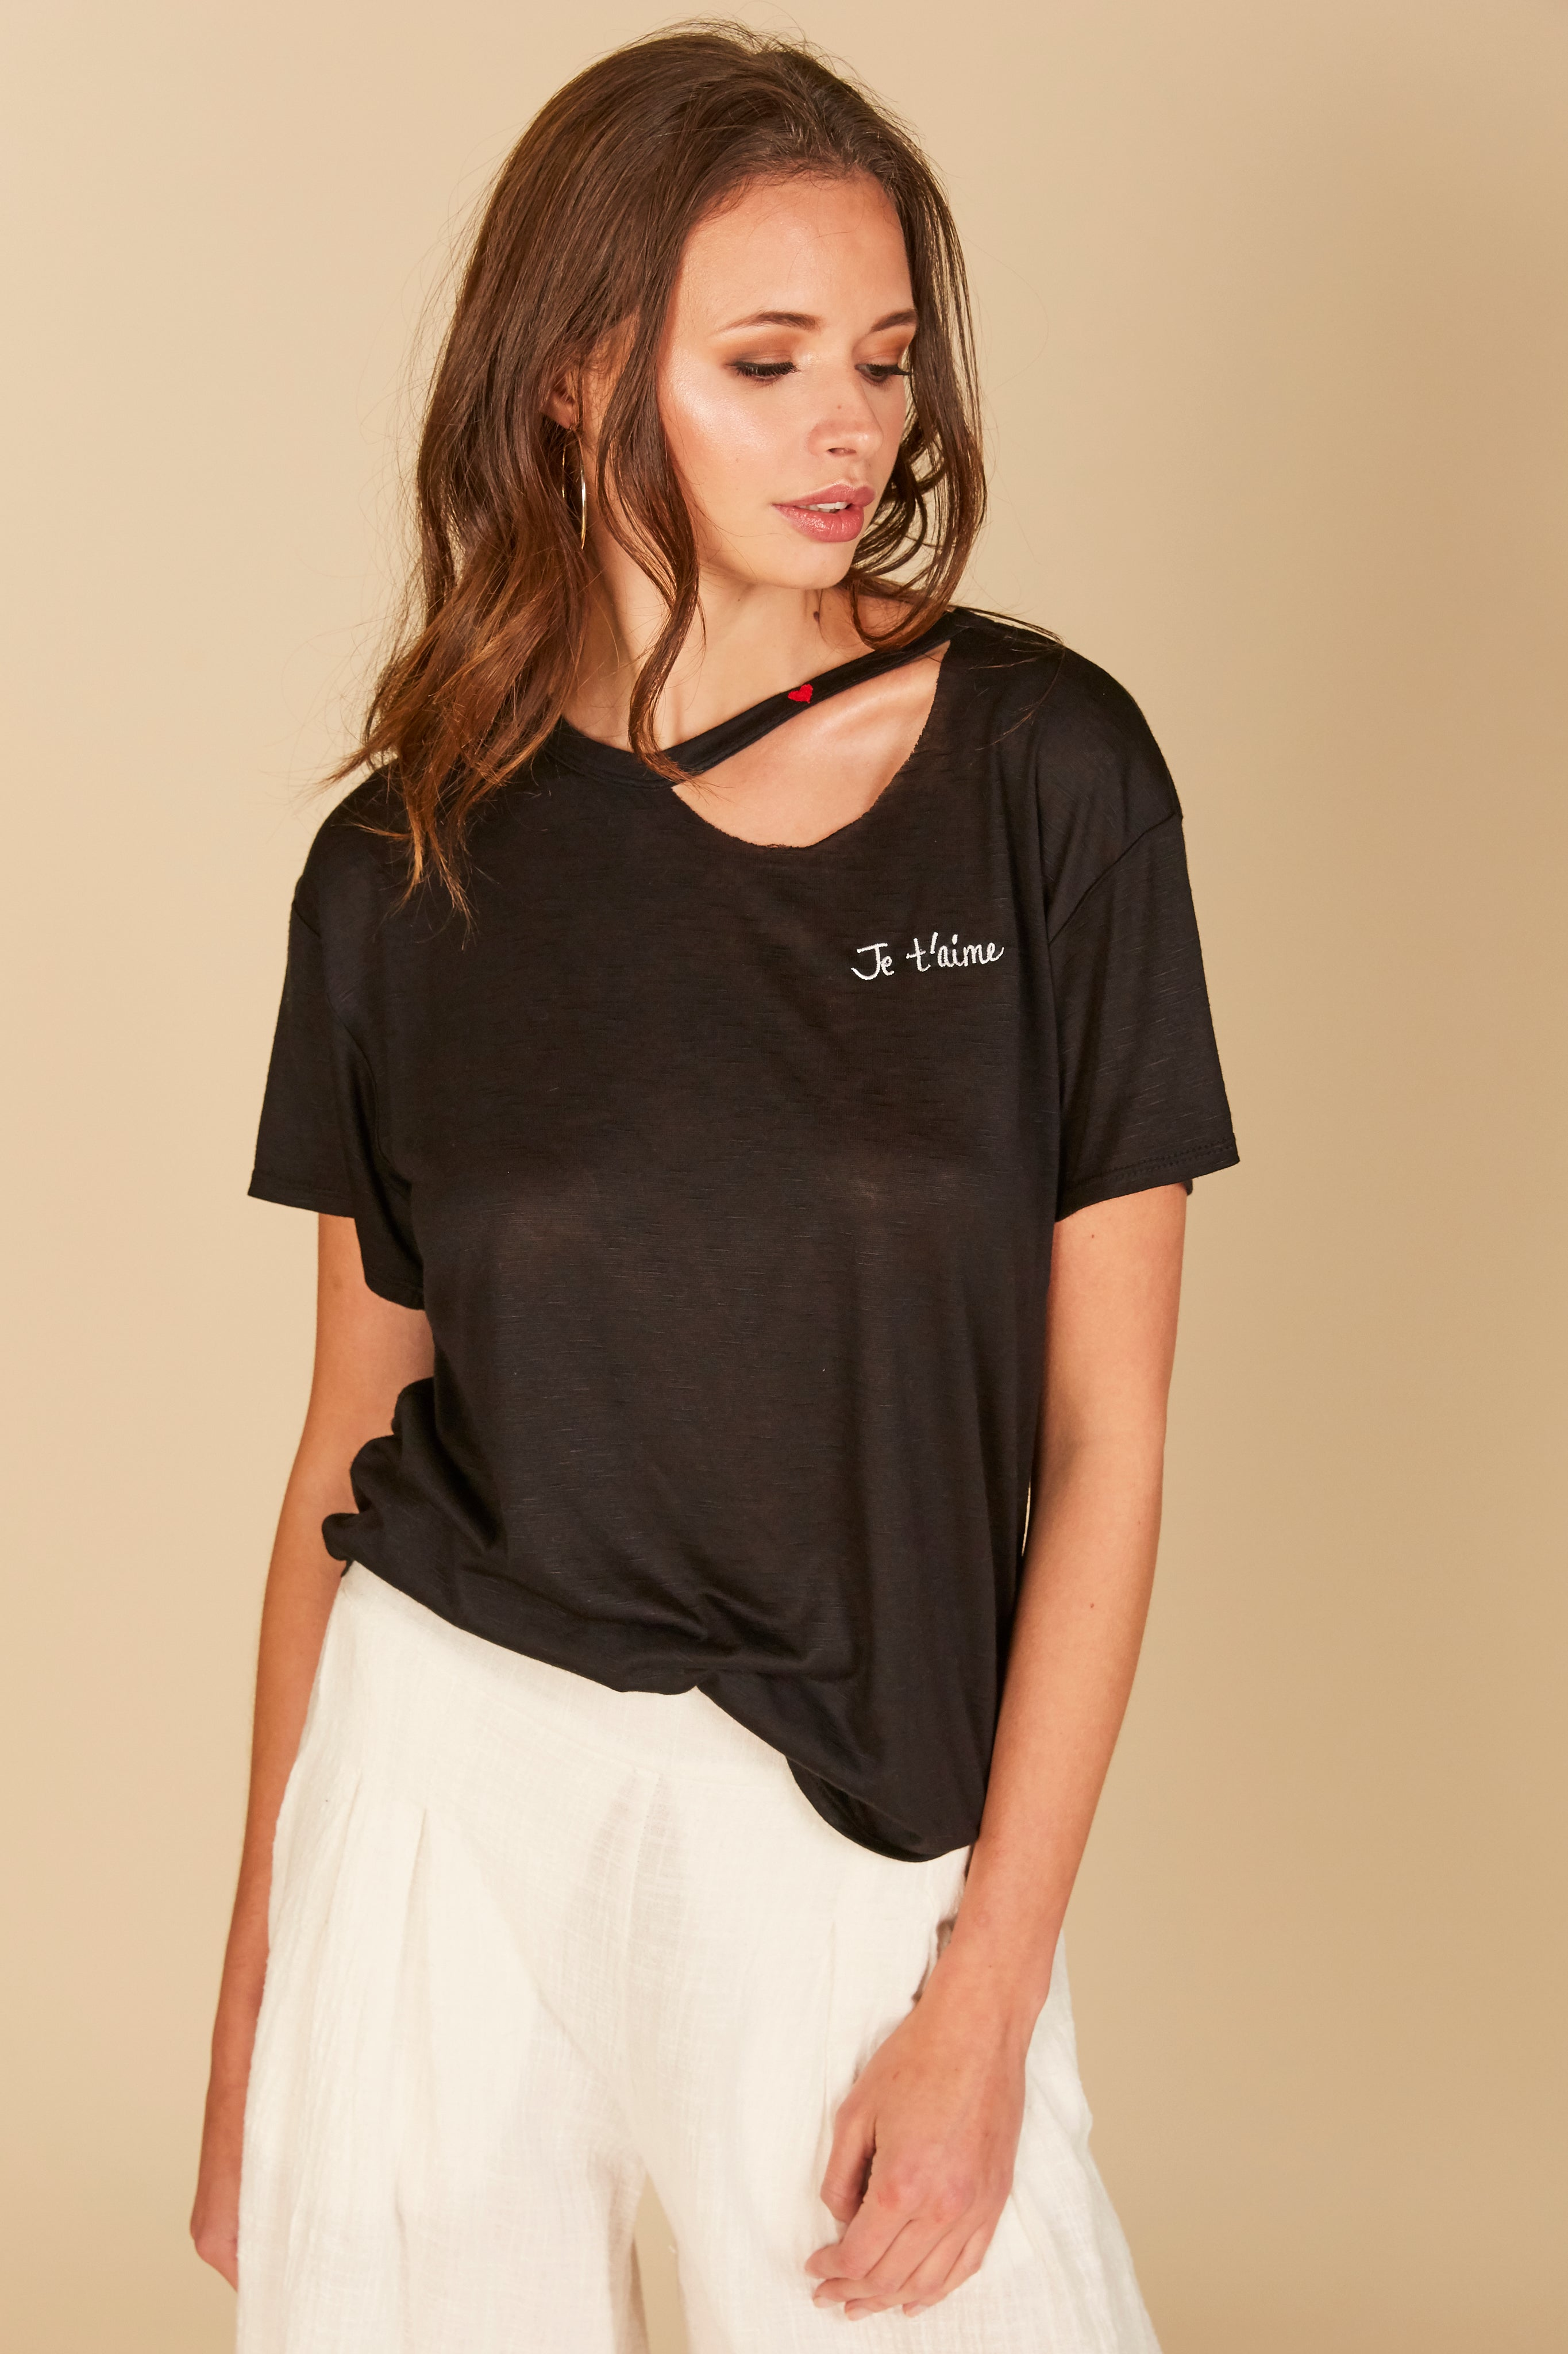 """Jetaime"" Embroidered Cutout Tee"